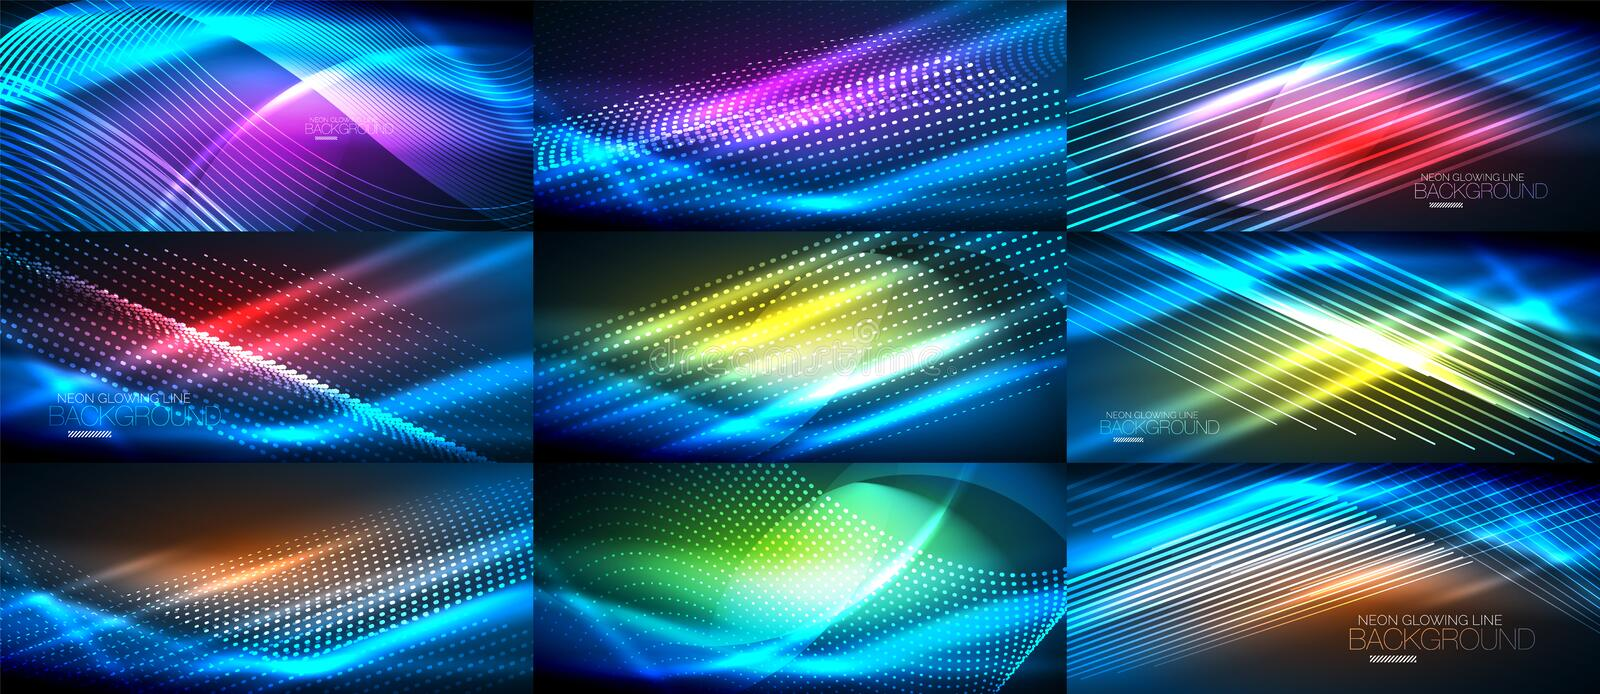 Set of blue neon smooth wave digital abstract backgrounds vector illustration